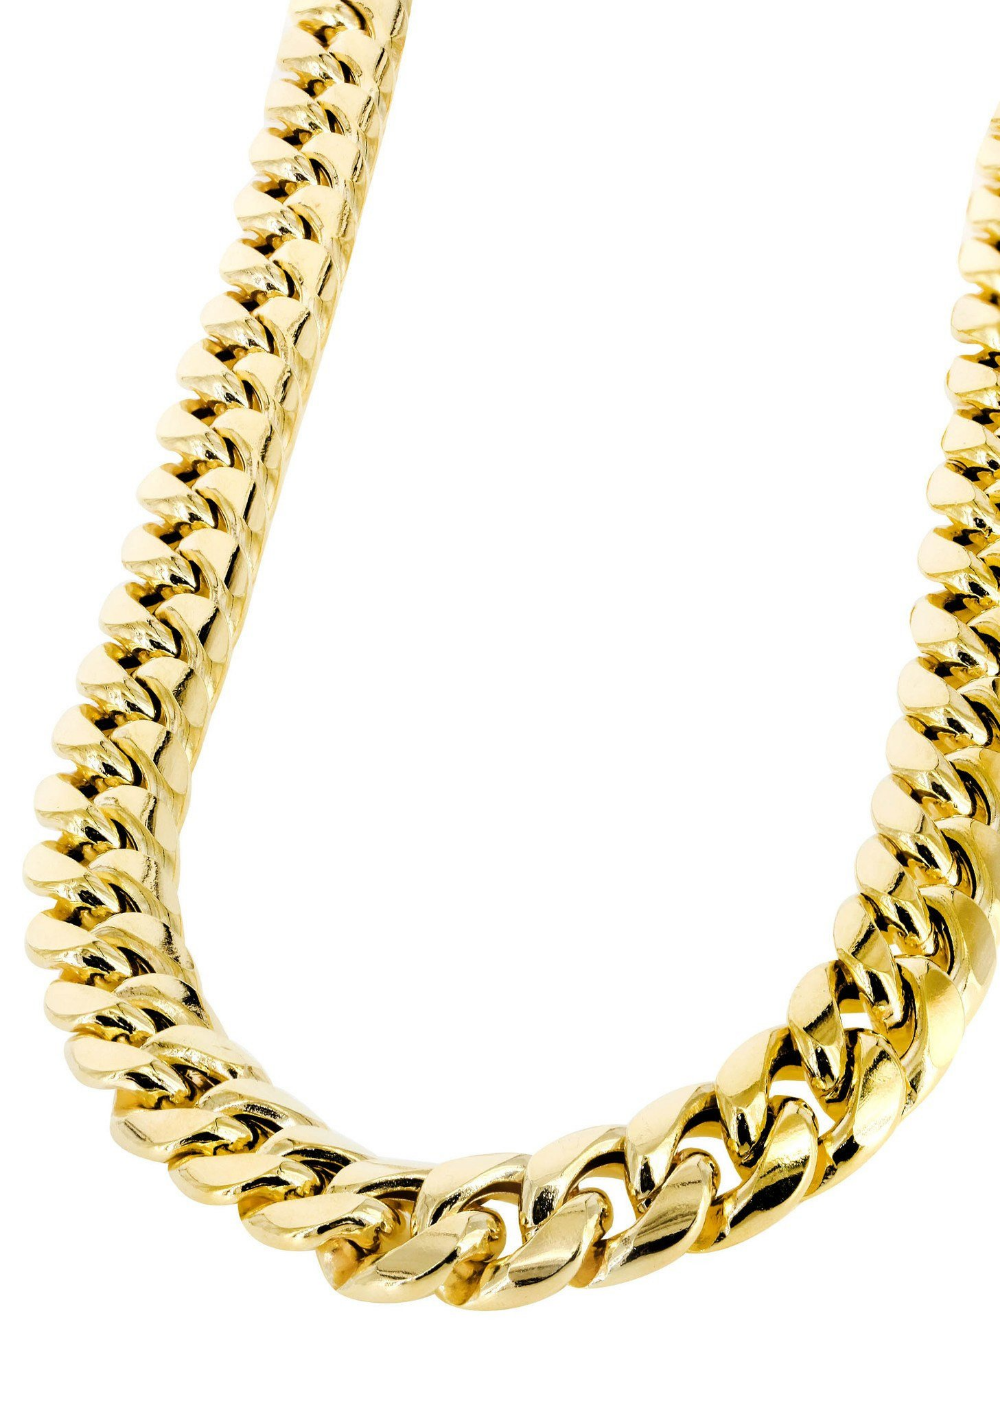 14k Gold Chain Hollow Yellow Miami Cuban Link Chain Gold Chains For Men 14k White Gold Chain White Gold Chains